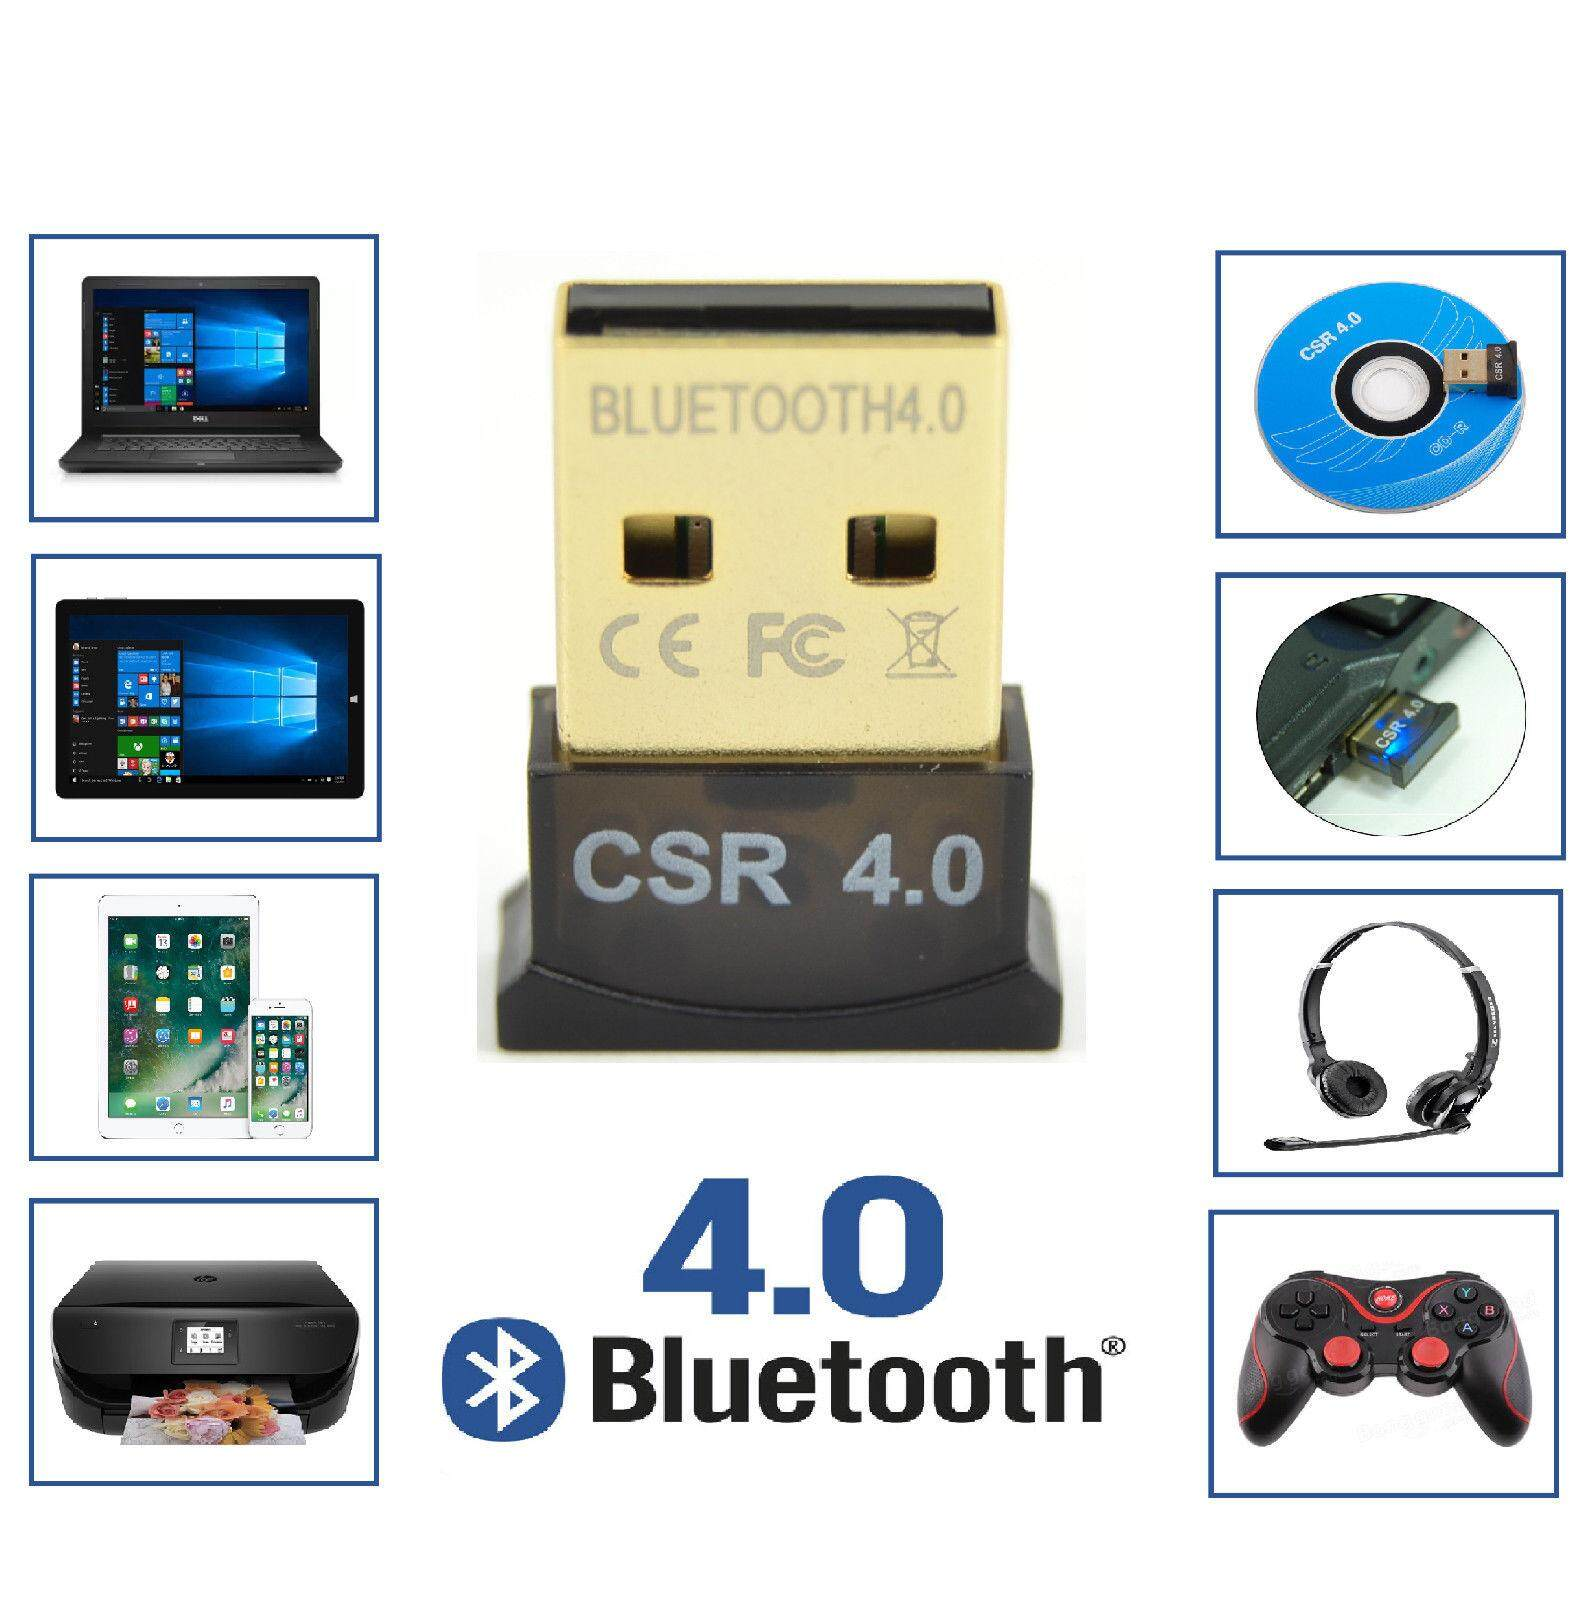 ใหม่ล่าสุด2018!!! ของแท้! Usb Bluetooth Adapter V4.0 Dual Mode High Speed Wireless Bluetooth Dongle Csr 4.0 Usb 2.0/3.0 For Windows 10/8/7/vista/xp รุ่น Mg1001.